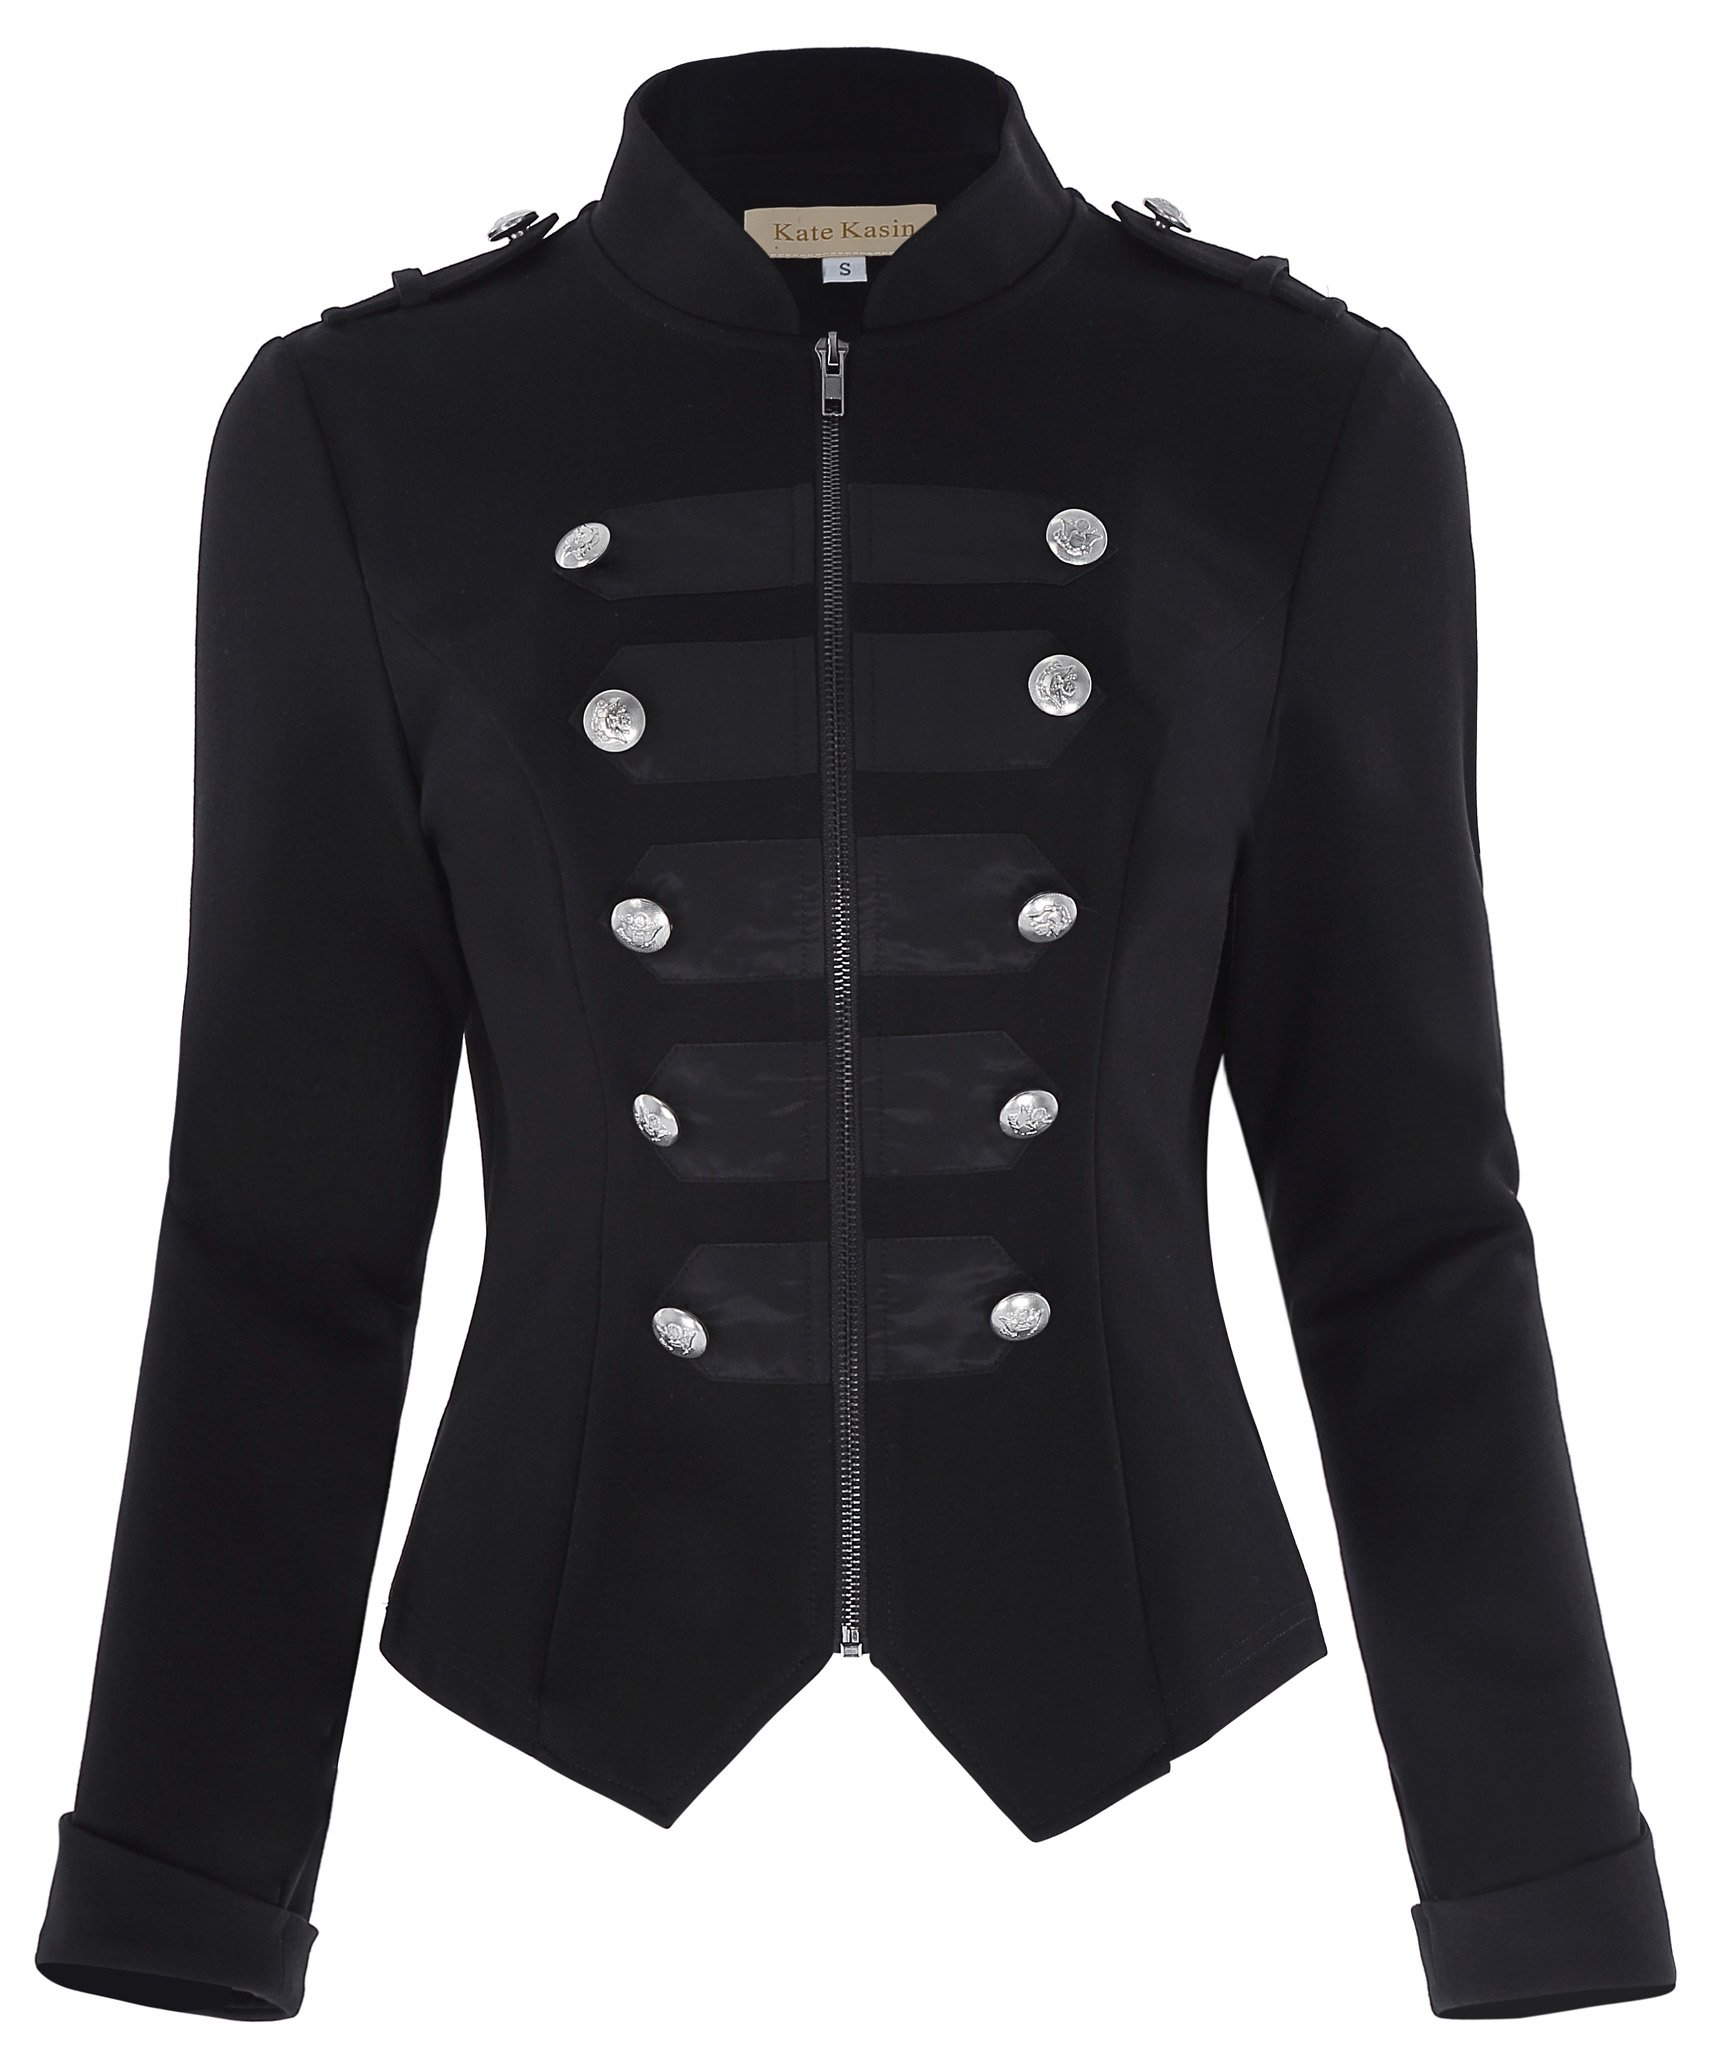 Kate Kasin Women's Black Steampunk Military Coat Tops Ringmaster Jacket KK464-1 Black Size S